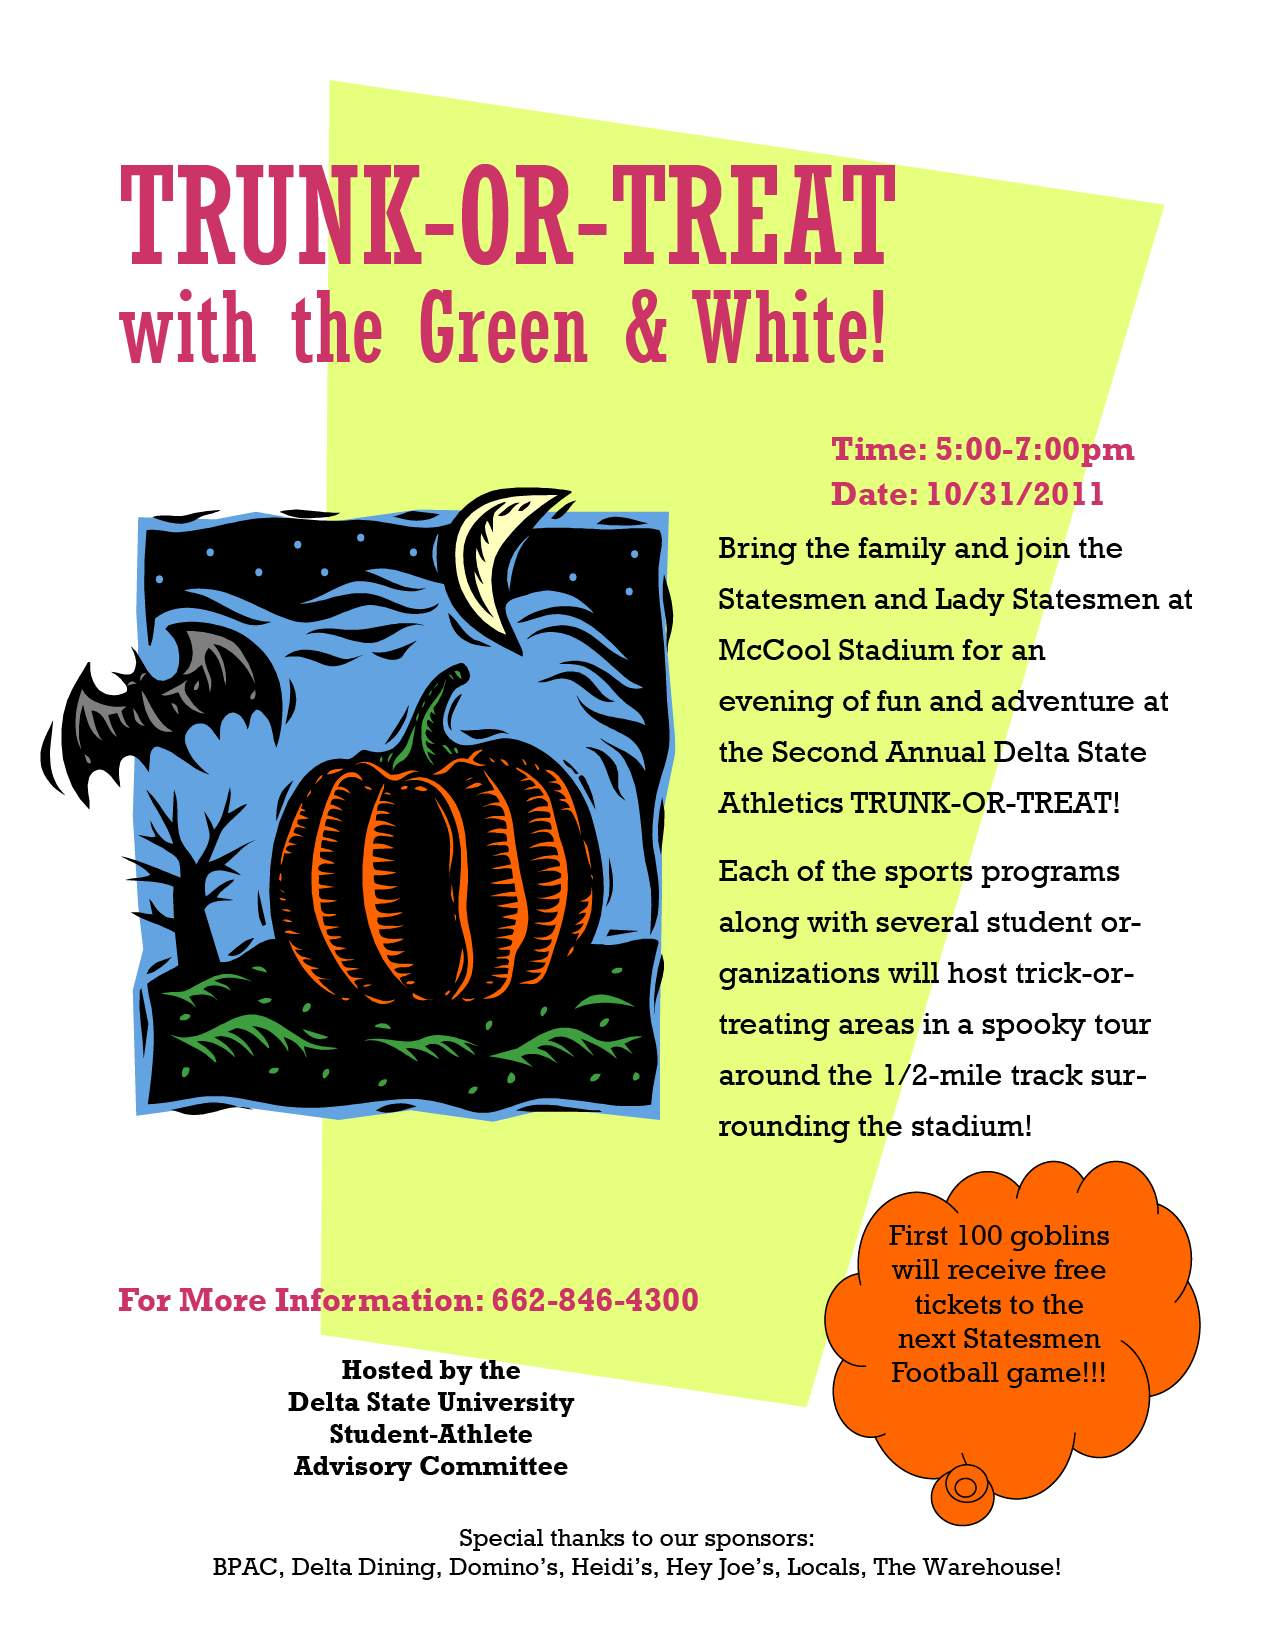 Trunk Or Treat Flyer http://www.deltastate.edu/pages/3469.asp?item=8451